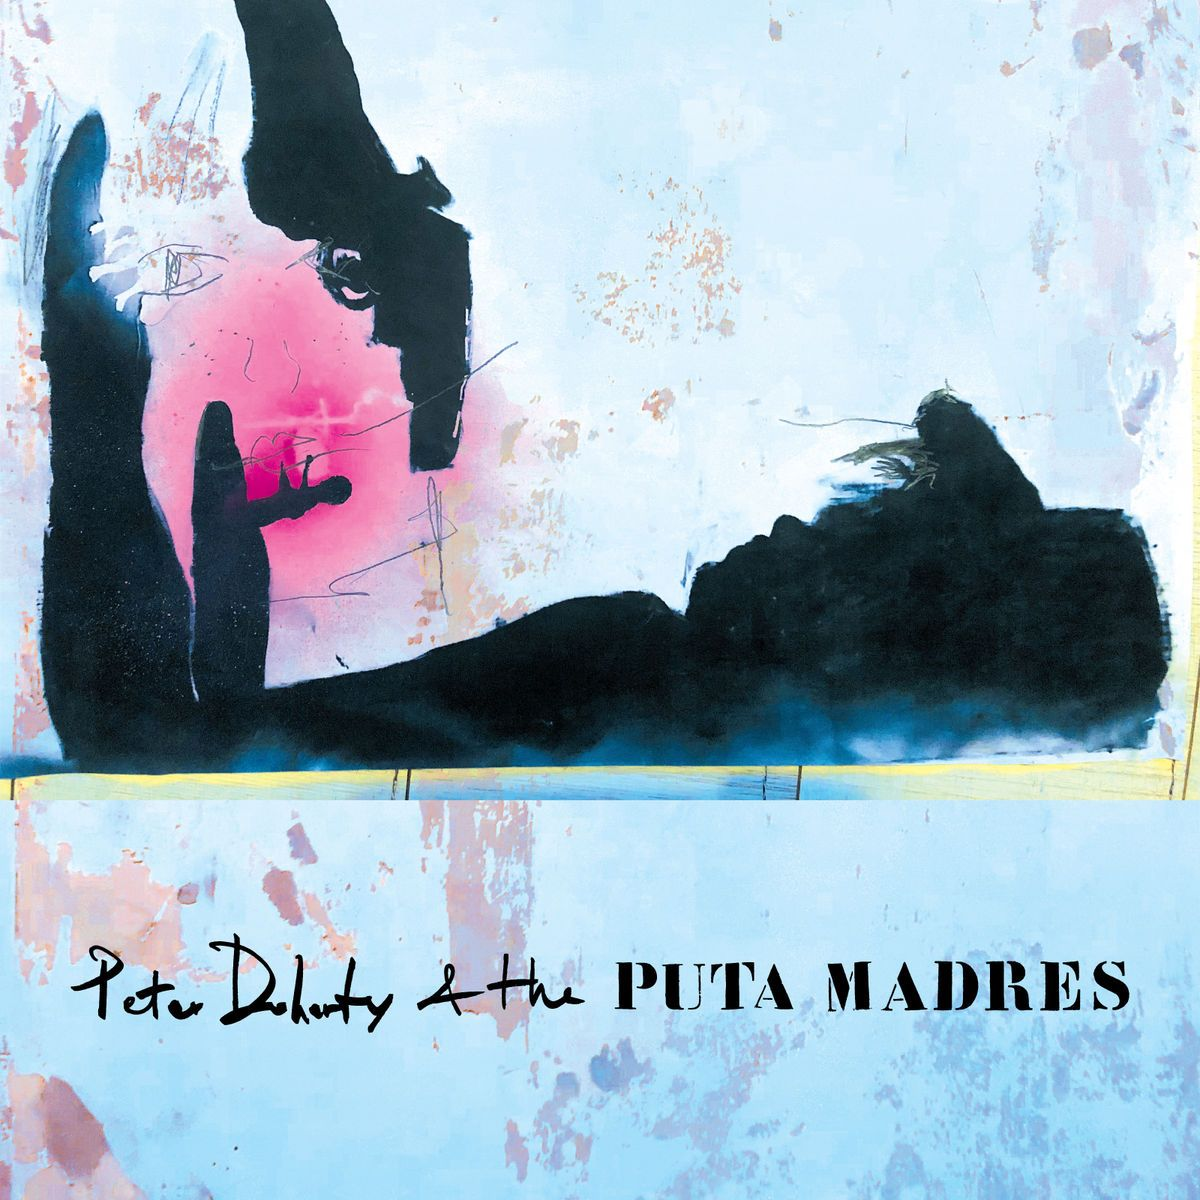 Peter Doherty & The Puta Madres - Homónimo